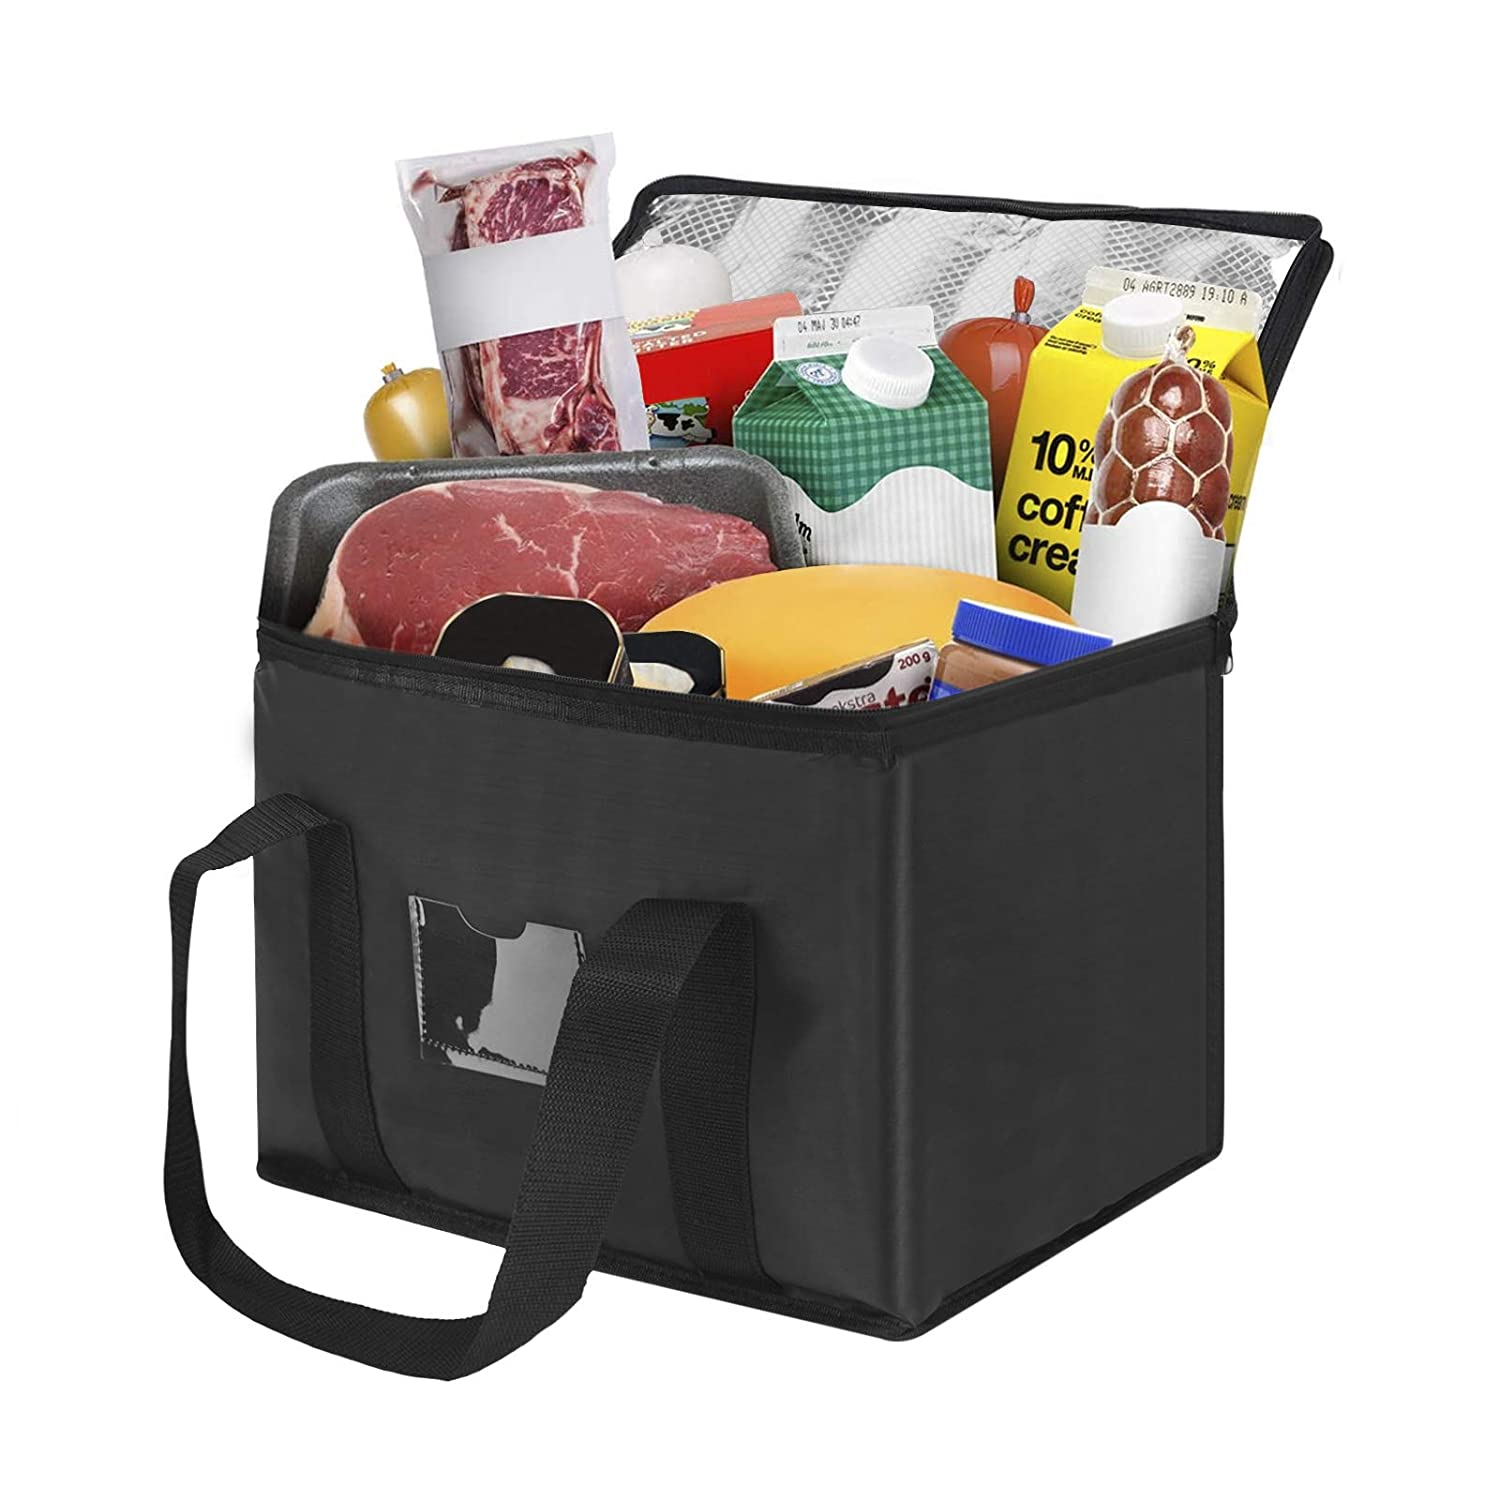 Insulated Food Delivery Bag Reusable Grocery Bag Meal Grocery Tote Waterproof Storage Collapsible Box Large Capacity Supply Bag Carrier for Hot and Cold Food, Catering, Buffet Server Transport